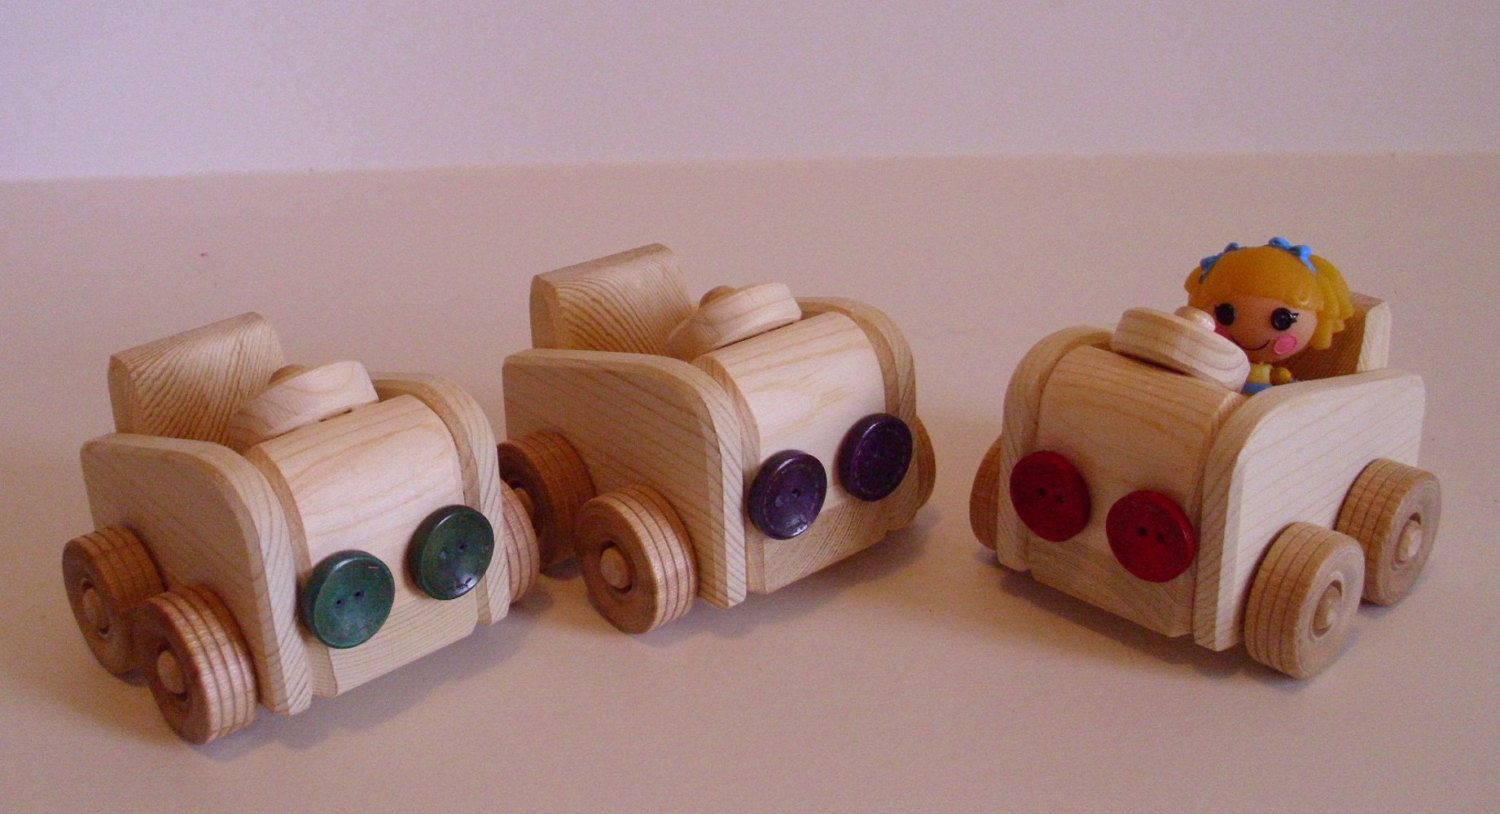 Mini Lalaloopsy-scale Doll Natural Wood Toy Go-Carts, Wooden Cars, Waldorf inspired.  via Etsy.